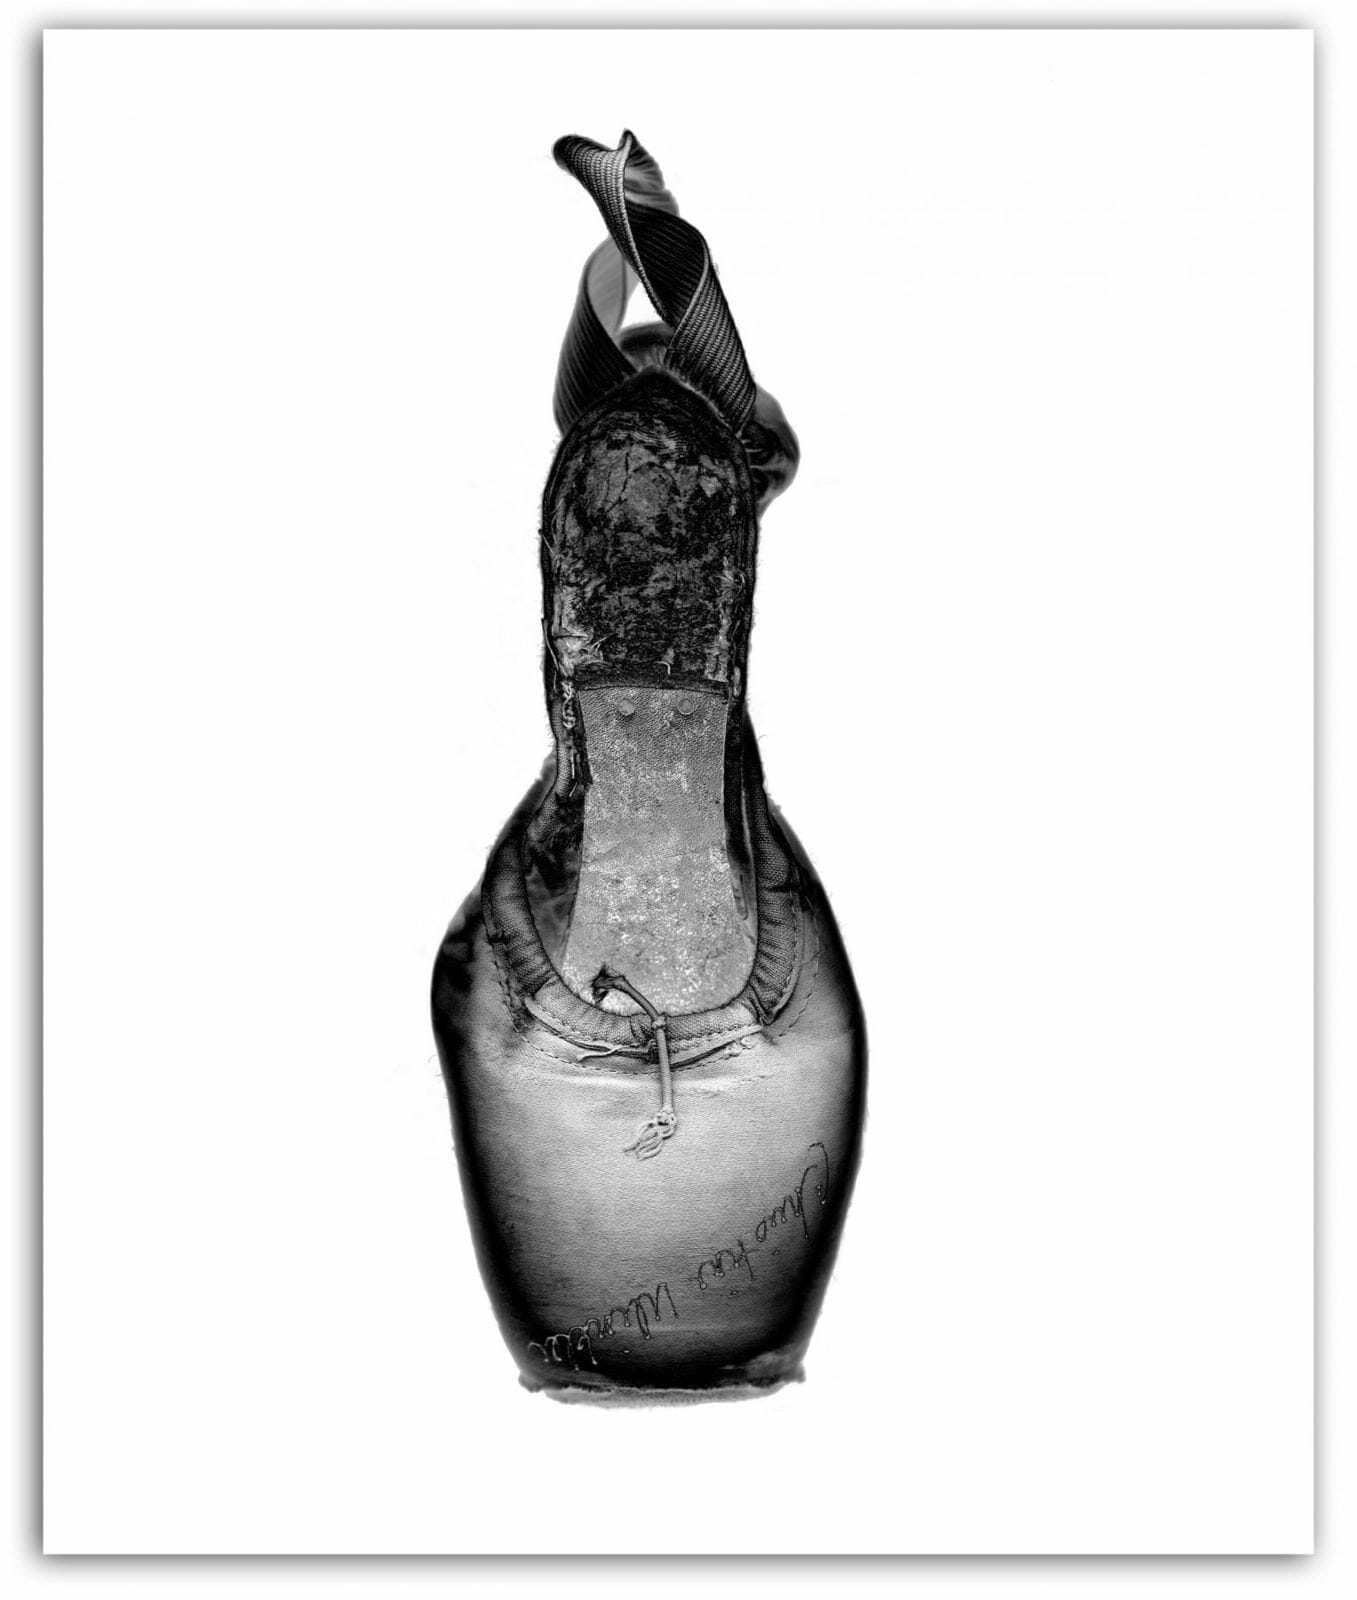 Charlie McCuller's photo of ballerina pointe shoes